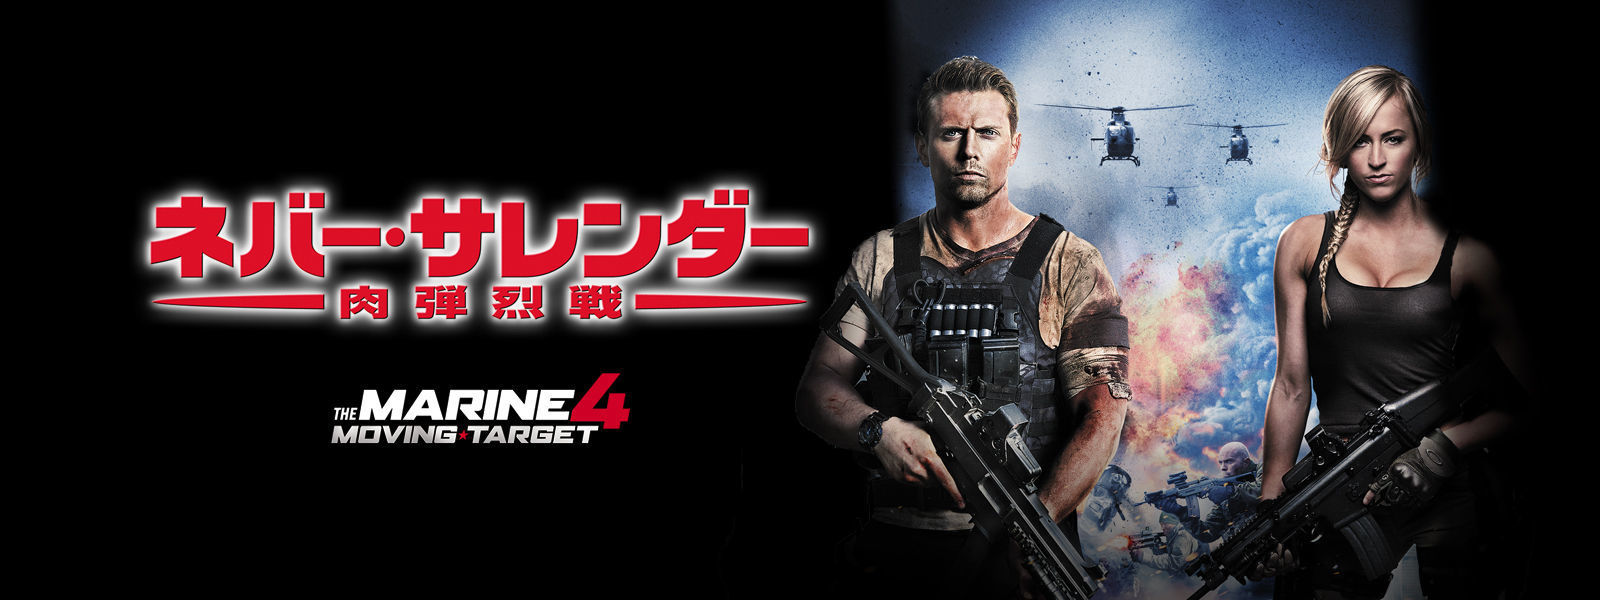 ネバー・サレンダー 肉弾烈戦|The Marine 4: Moving Target Hero Object